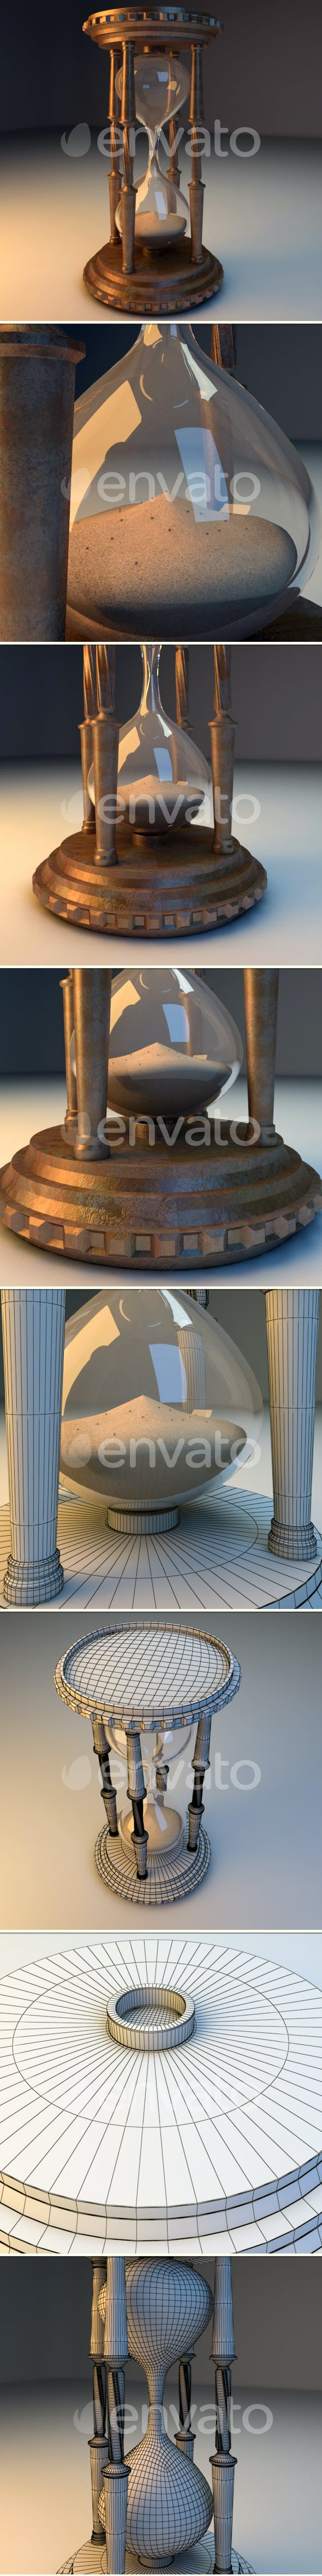 Antique Hourglass - 3DOcean Item for Sale